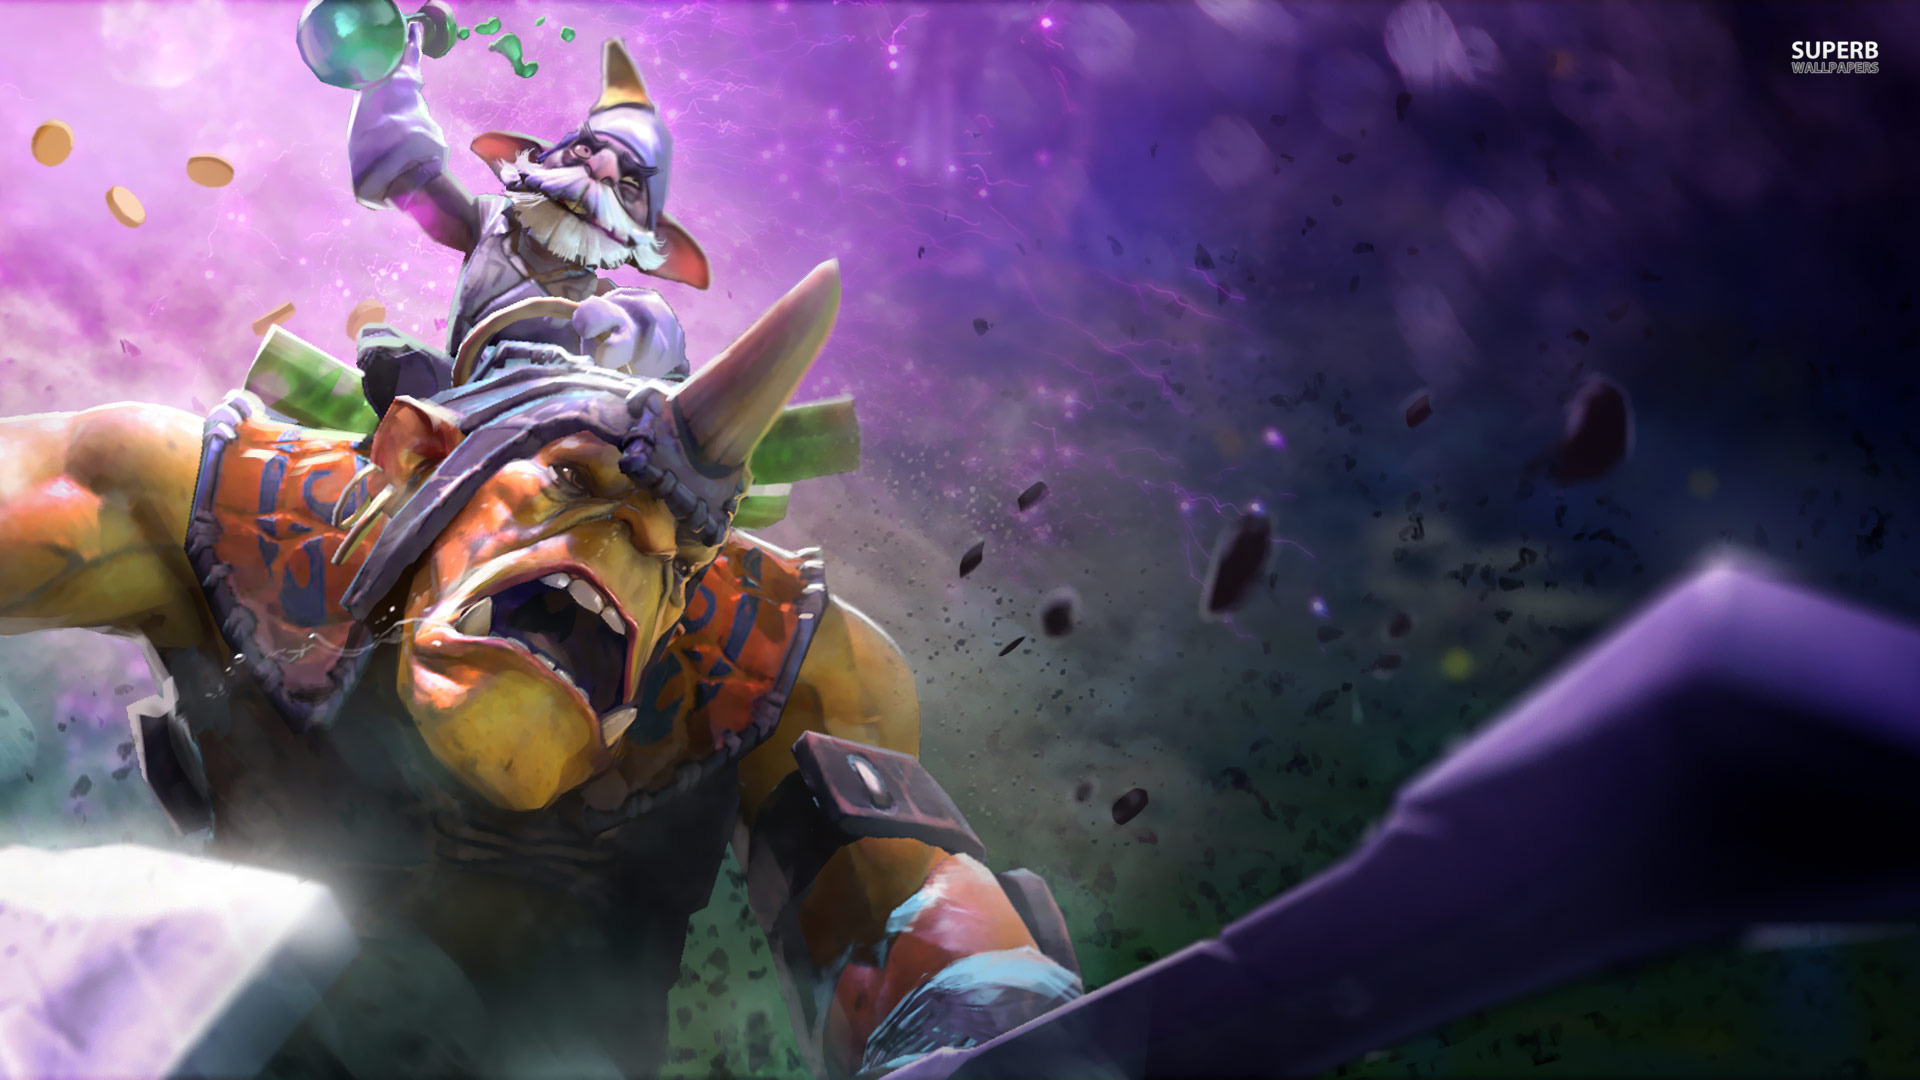 Alchemist Loading Screen Wallpaper Dota 2 HD Wallpapers 1920x1080